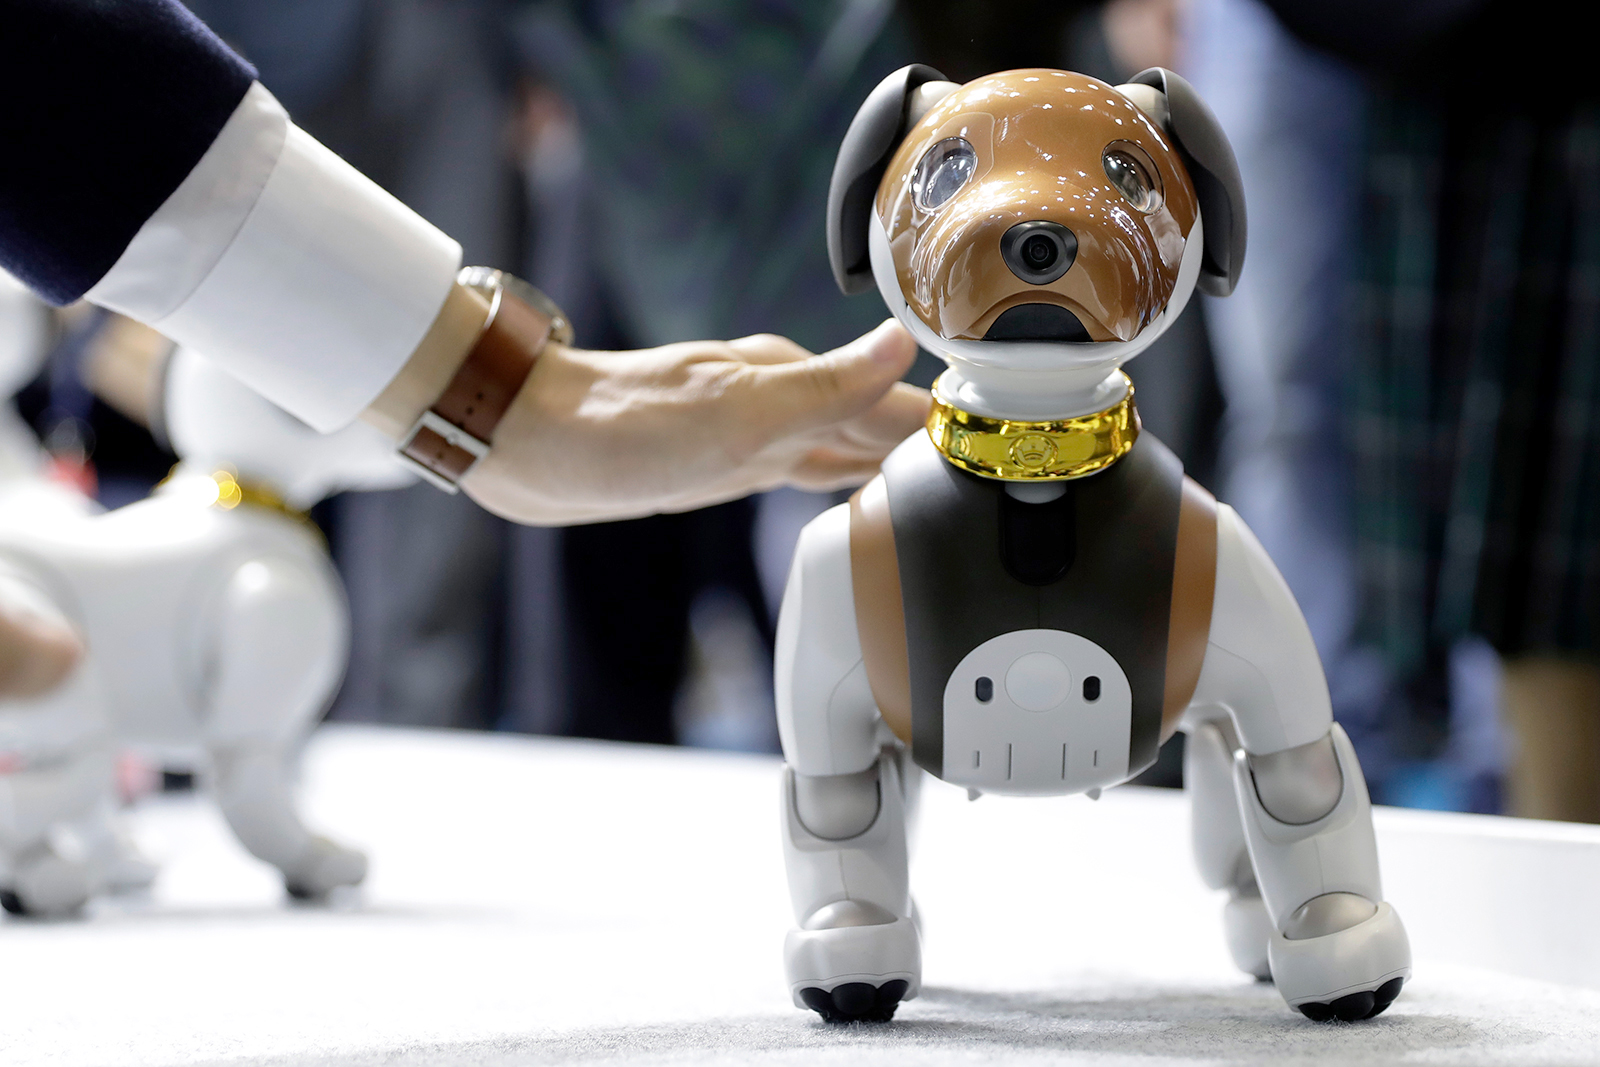 A robotic dog, 'Aibo', created by Sony Corp. pictured at the Combined Exhibition of Advanced Technologies (CEATEC) in Chiba, Japan, on October 16, 2019.